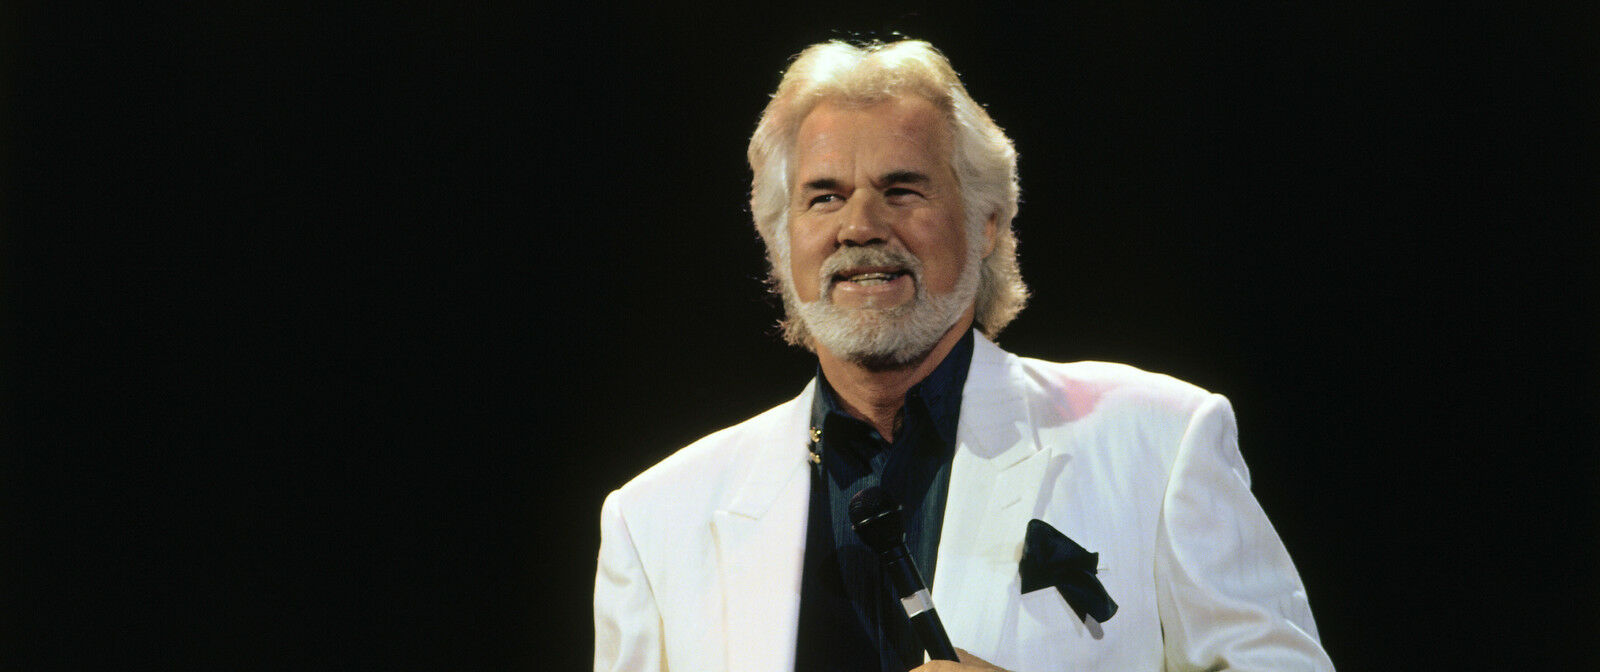 Kenny Rogers Final World Tour Tickets (21+ Event)